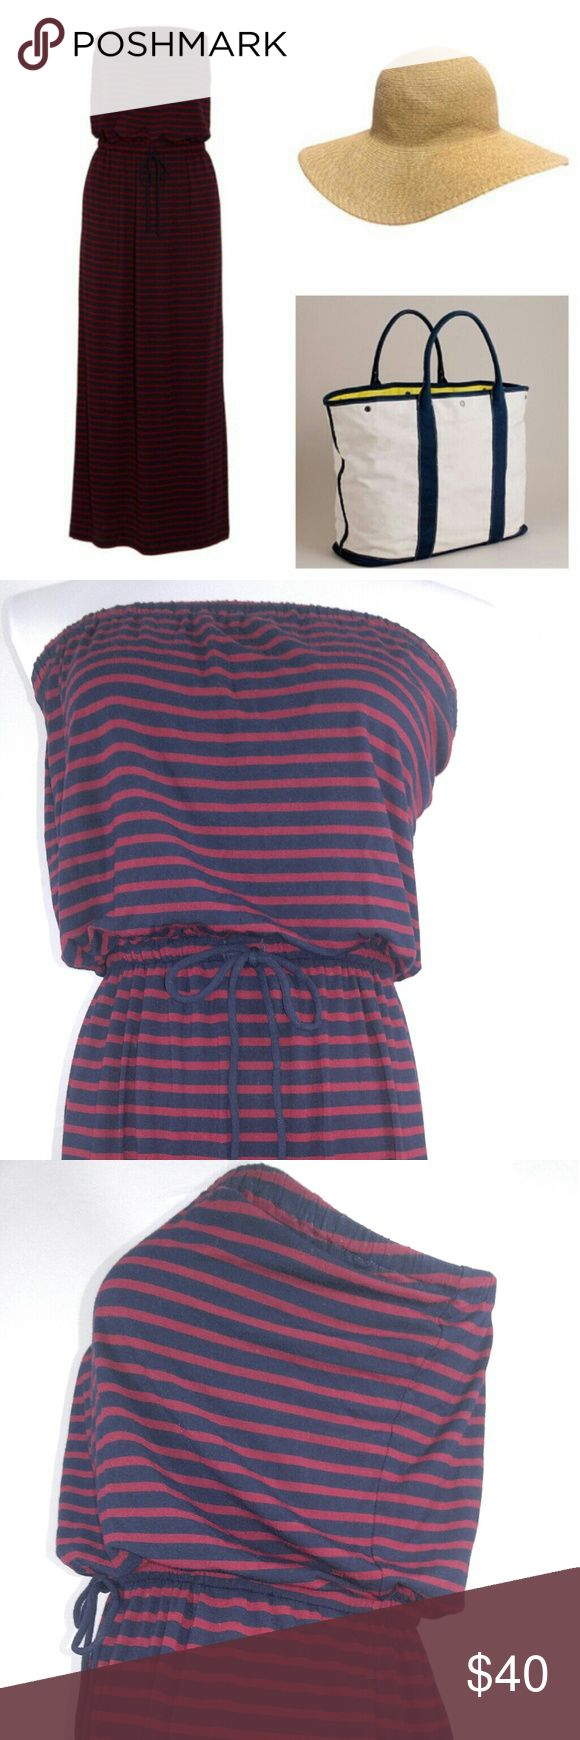 J Crew Amie Knit Maxidress in Skinny Stripe Navy A sleek, strapless silhouette made modern in see-worthy stripes. Styled with a drawstring waist and a body-skimming drape, the floor-sweeping length makes it the perfect canvas for dressing up or down. Rayon/spandex. Elastic waistband. Straight skirt. Import. Machine wash.   Materials:                  -95% Modal Rayane   -5% Spandex        j crew Dresses Maxi